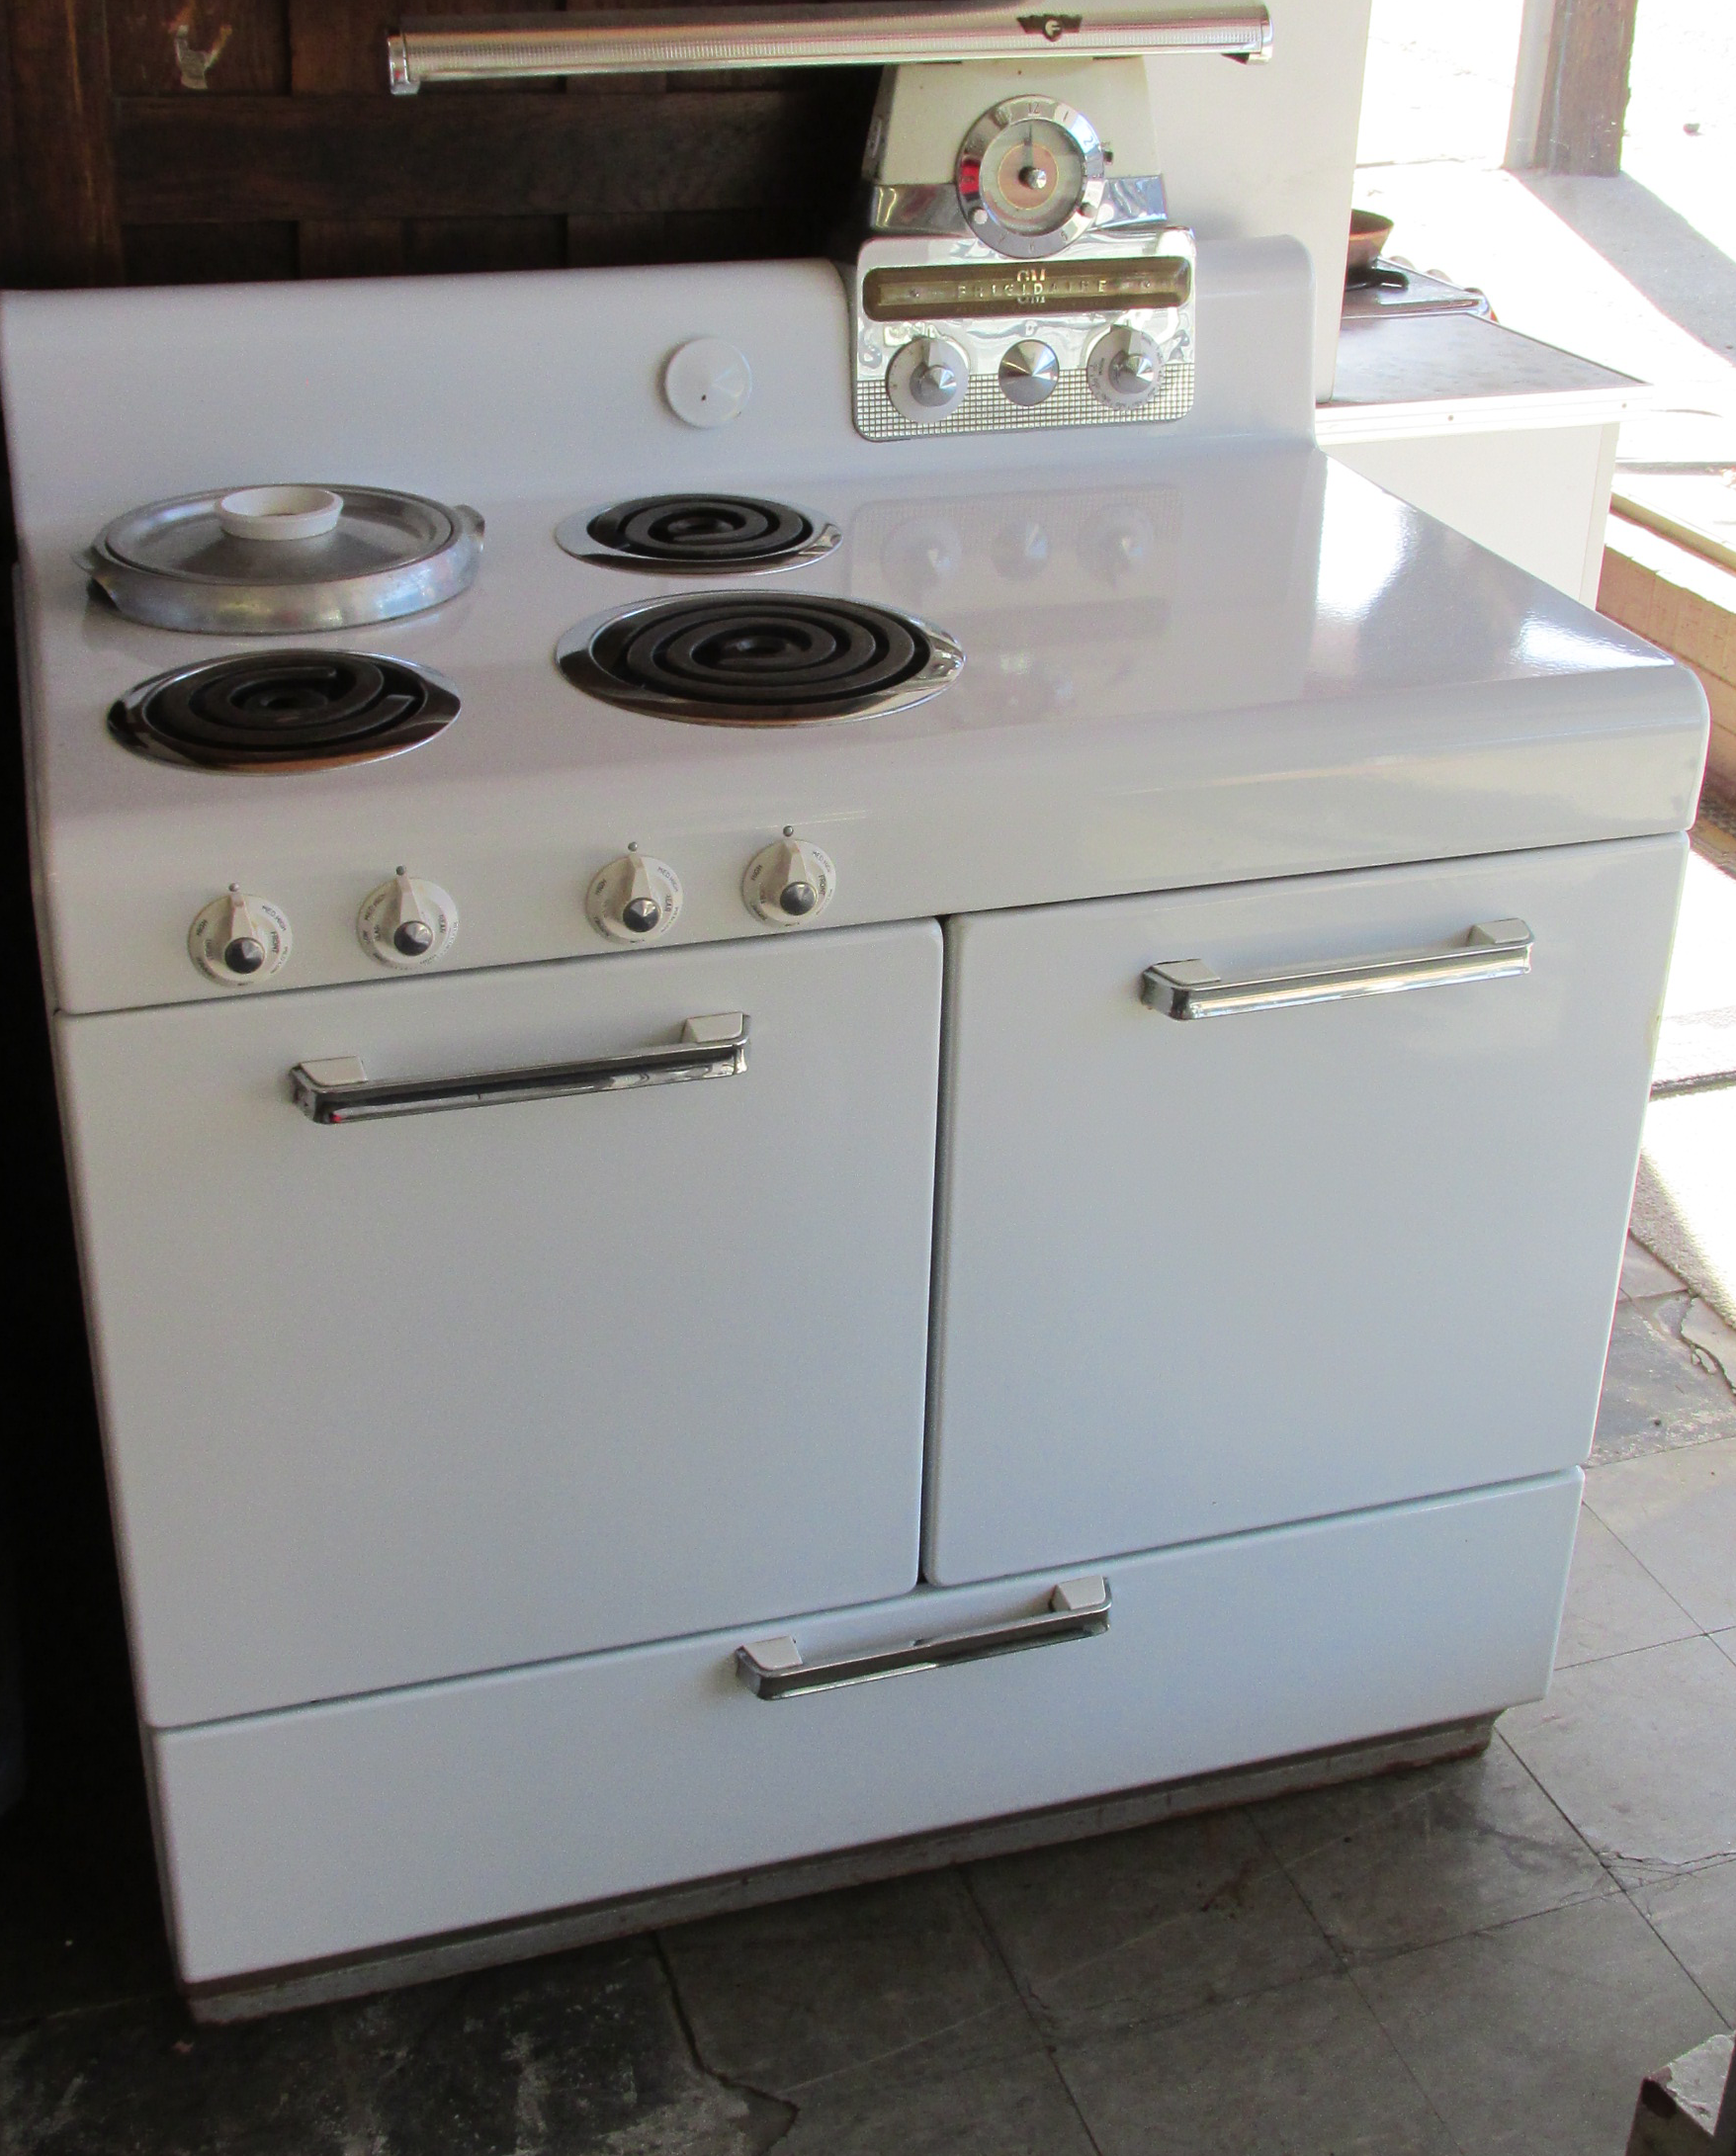 1947 Frigidaire Electric Stove